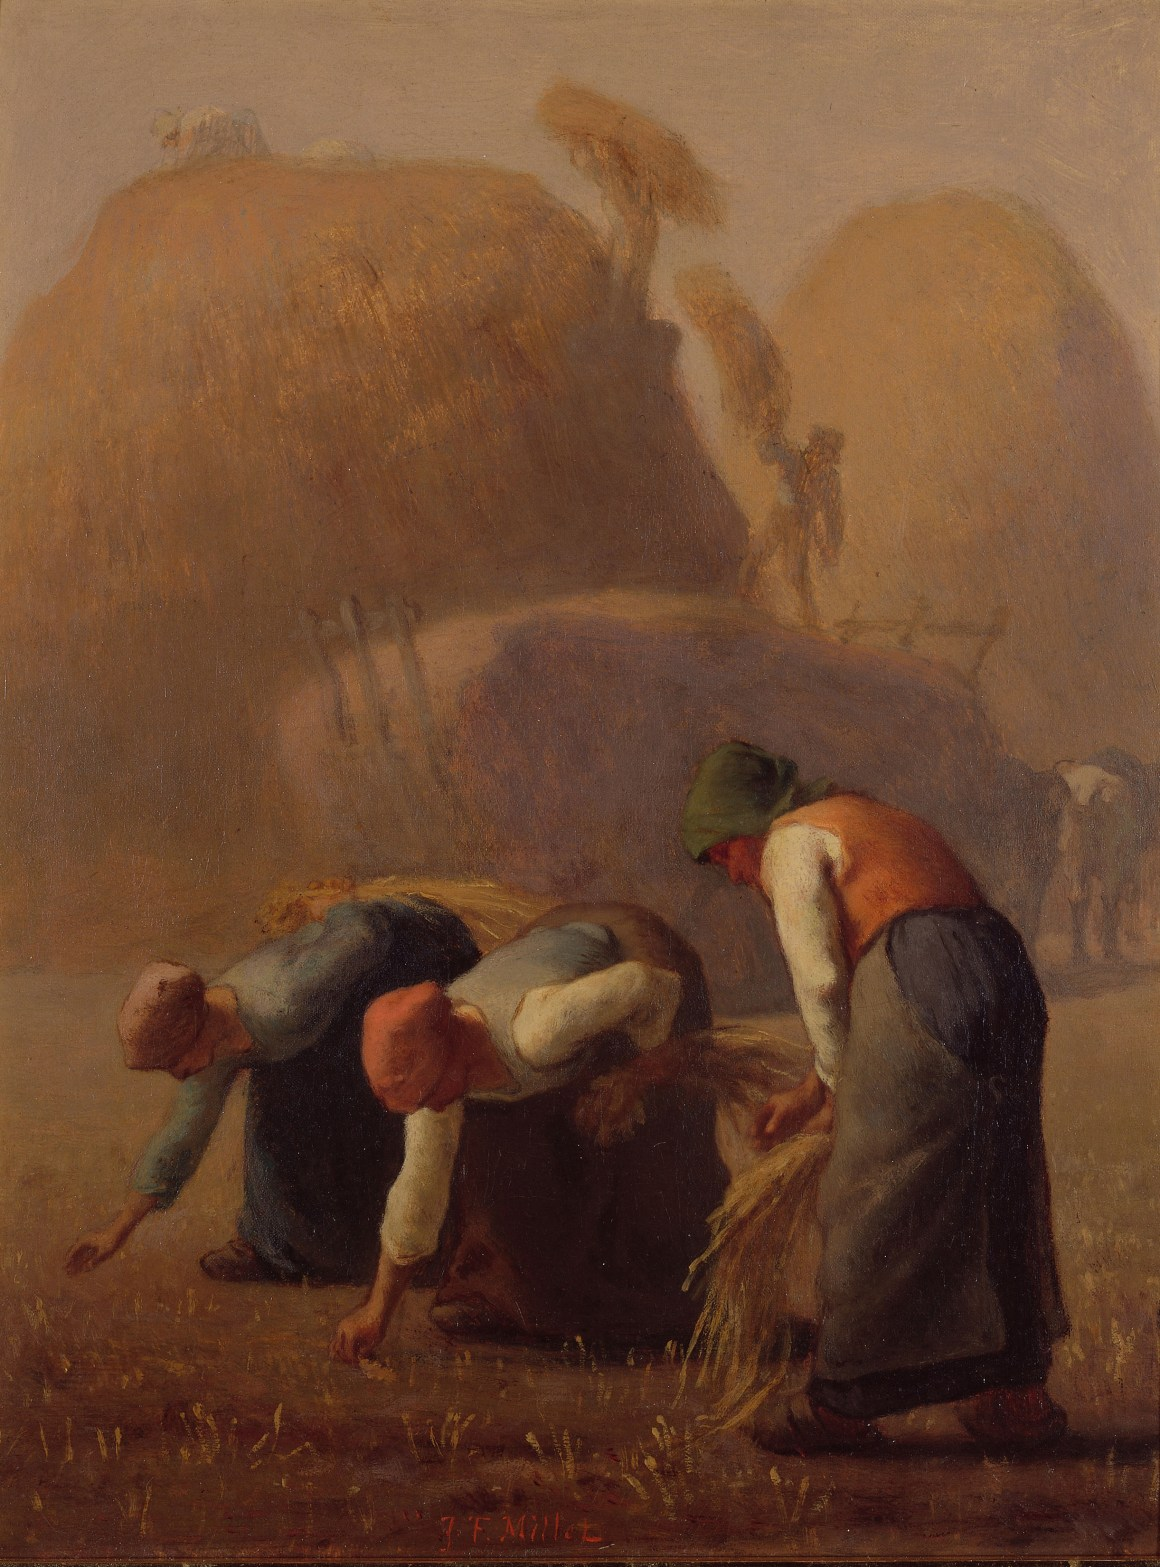 Jean-François Millet, French, 1814–1875; Summer, The Gleaners, 1853; oil on canvas; 15 1/16 × 11 9/16 inches; Yamanashi Prefectural Museum of Art 2020.80